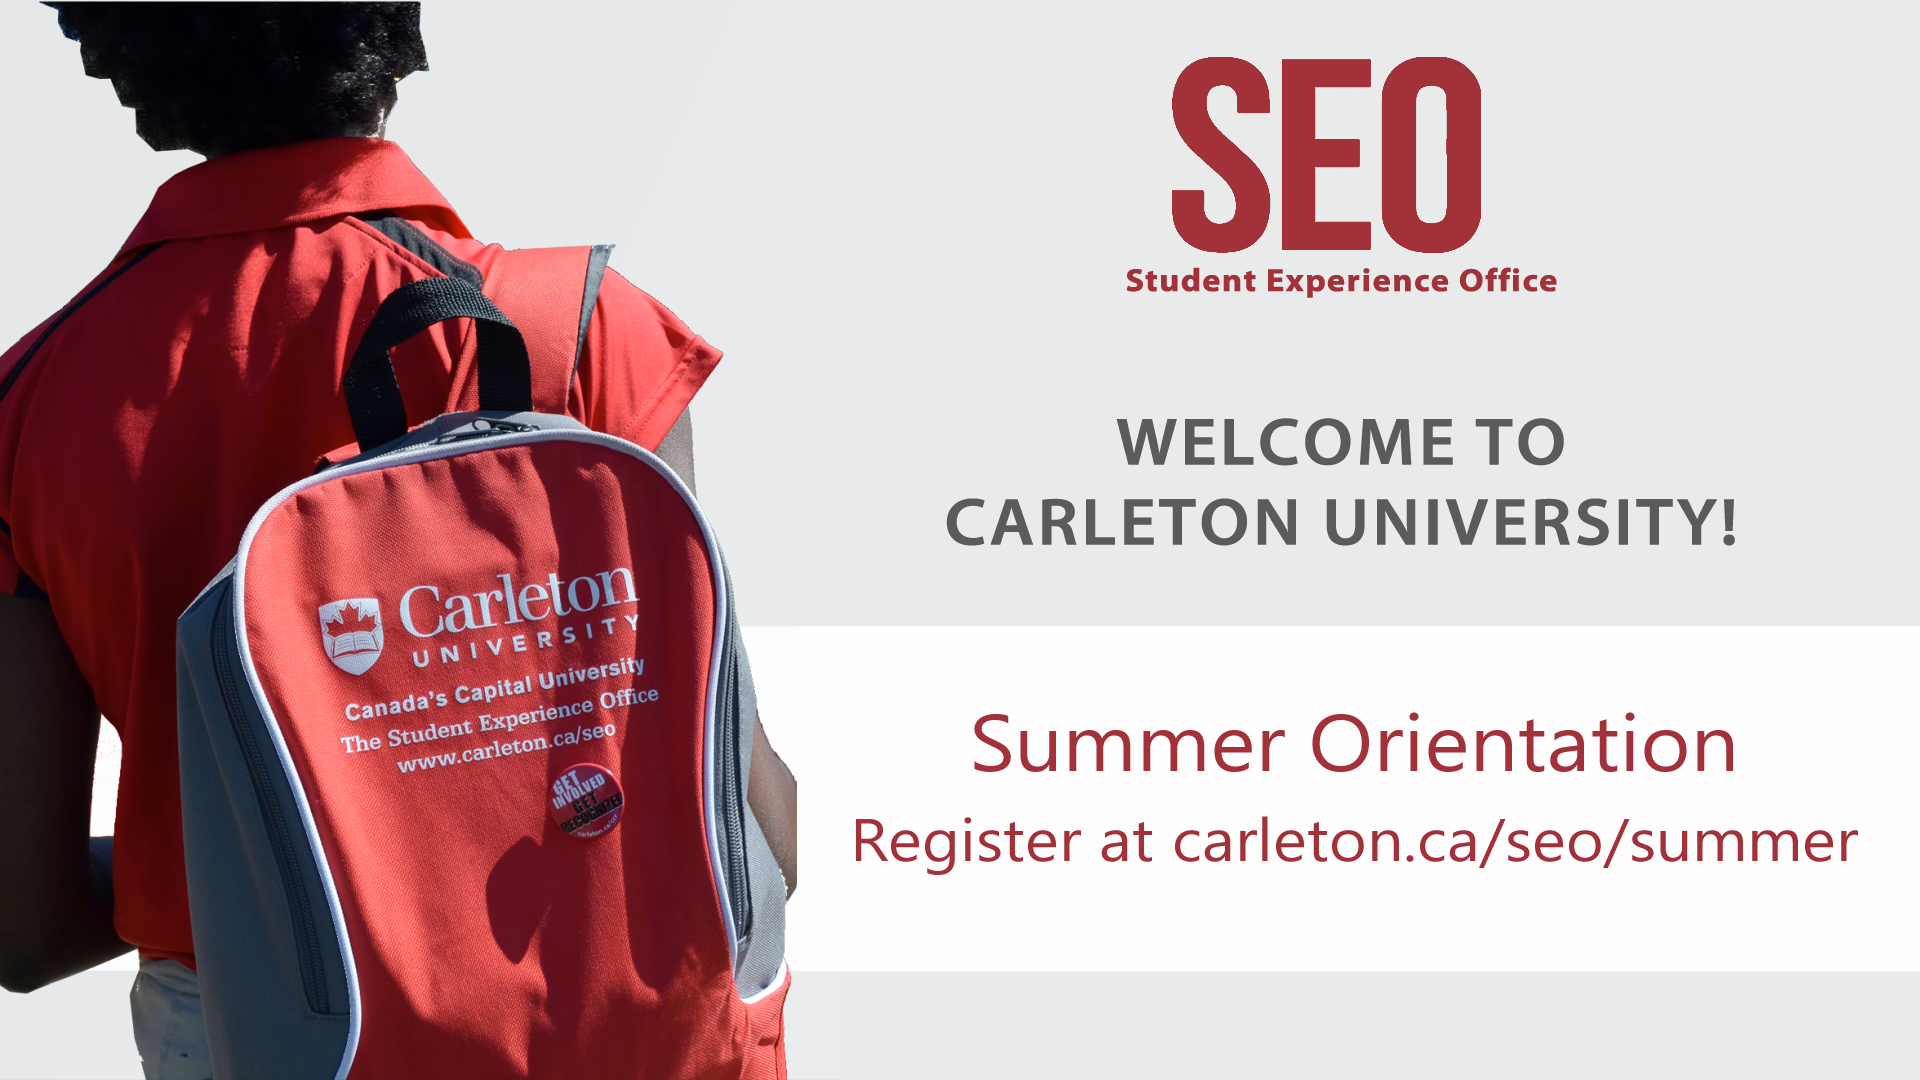 Summer Orientation Leader with Carleton bag; with text: Welcome to Carleton University! Summer Orientation. Register at carleton.ca/seo/summer.